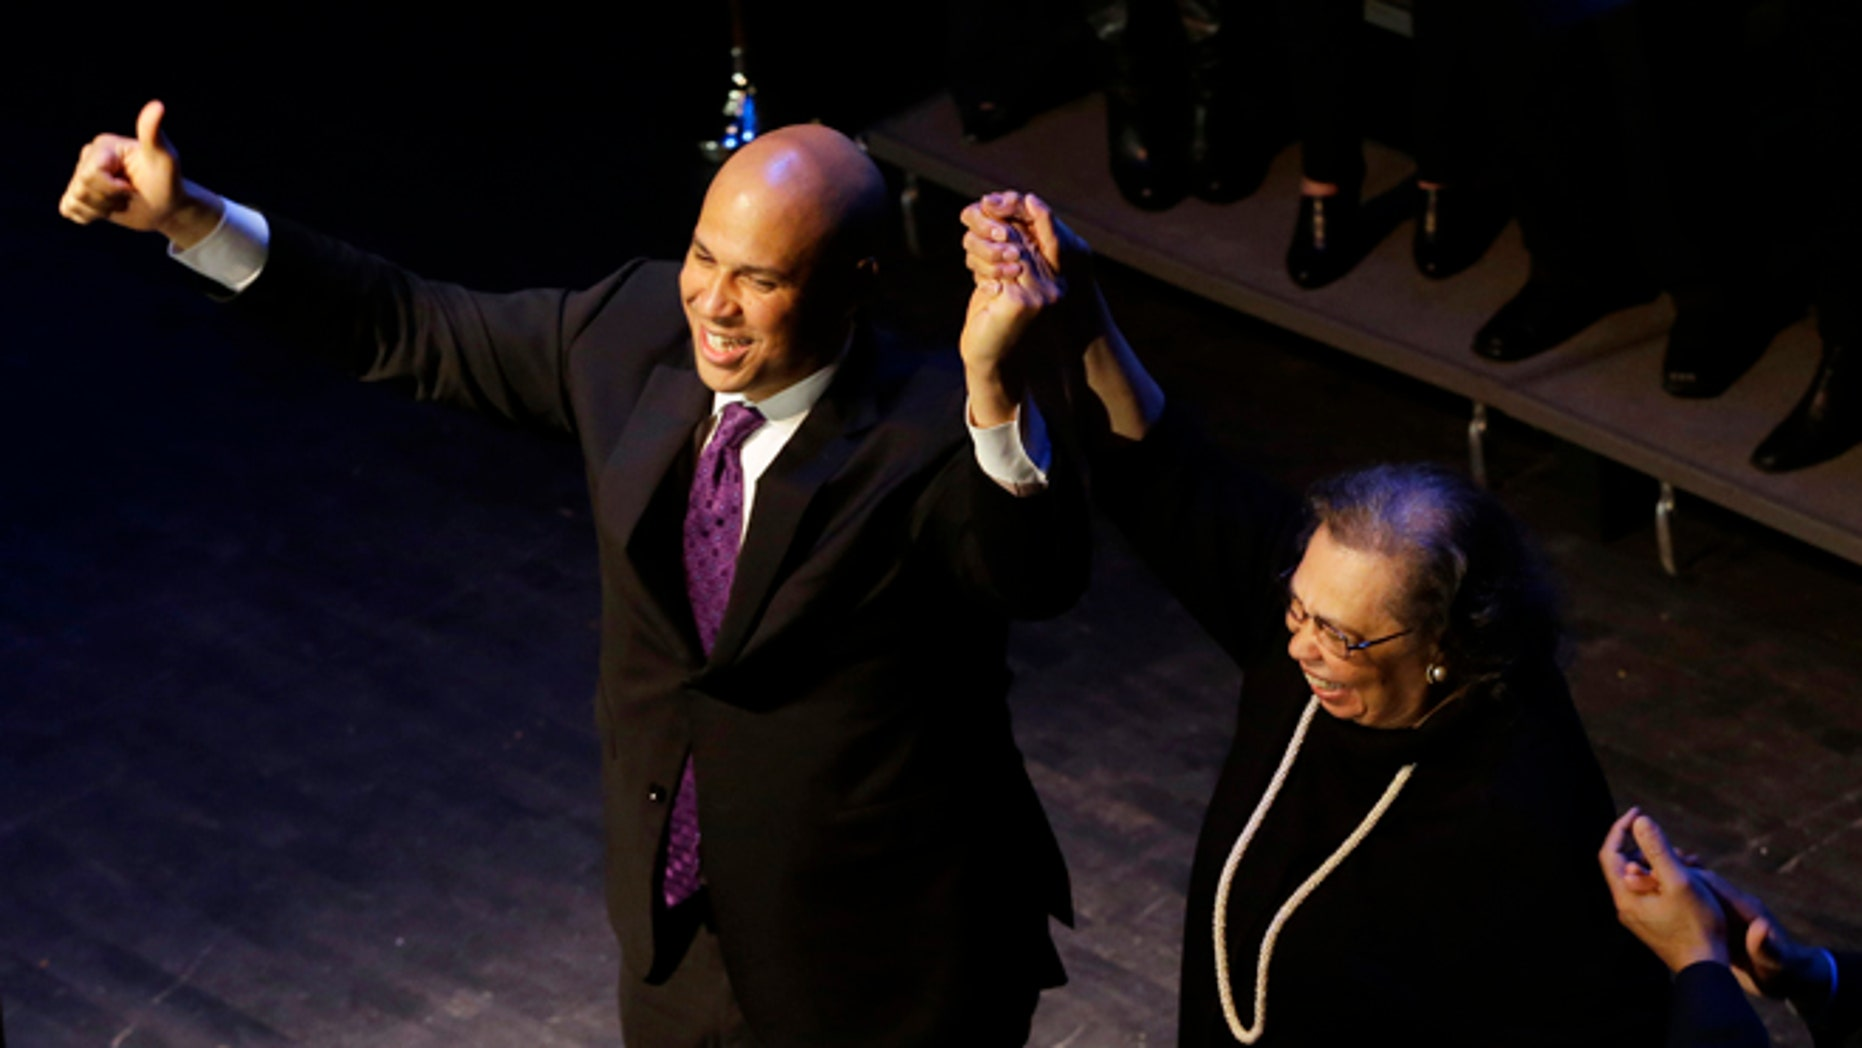 Wednesday, Oct. 16, 2013: Newark Mayor Cory Booker, left, holds the hand of his mother Carolyn Booker after his victory speech during an election night party, Newark, N.J.